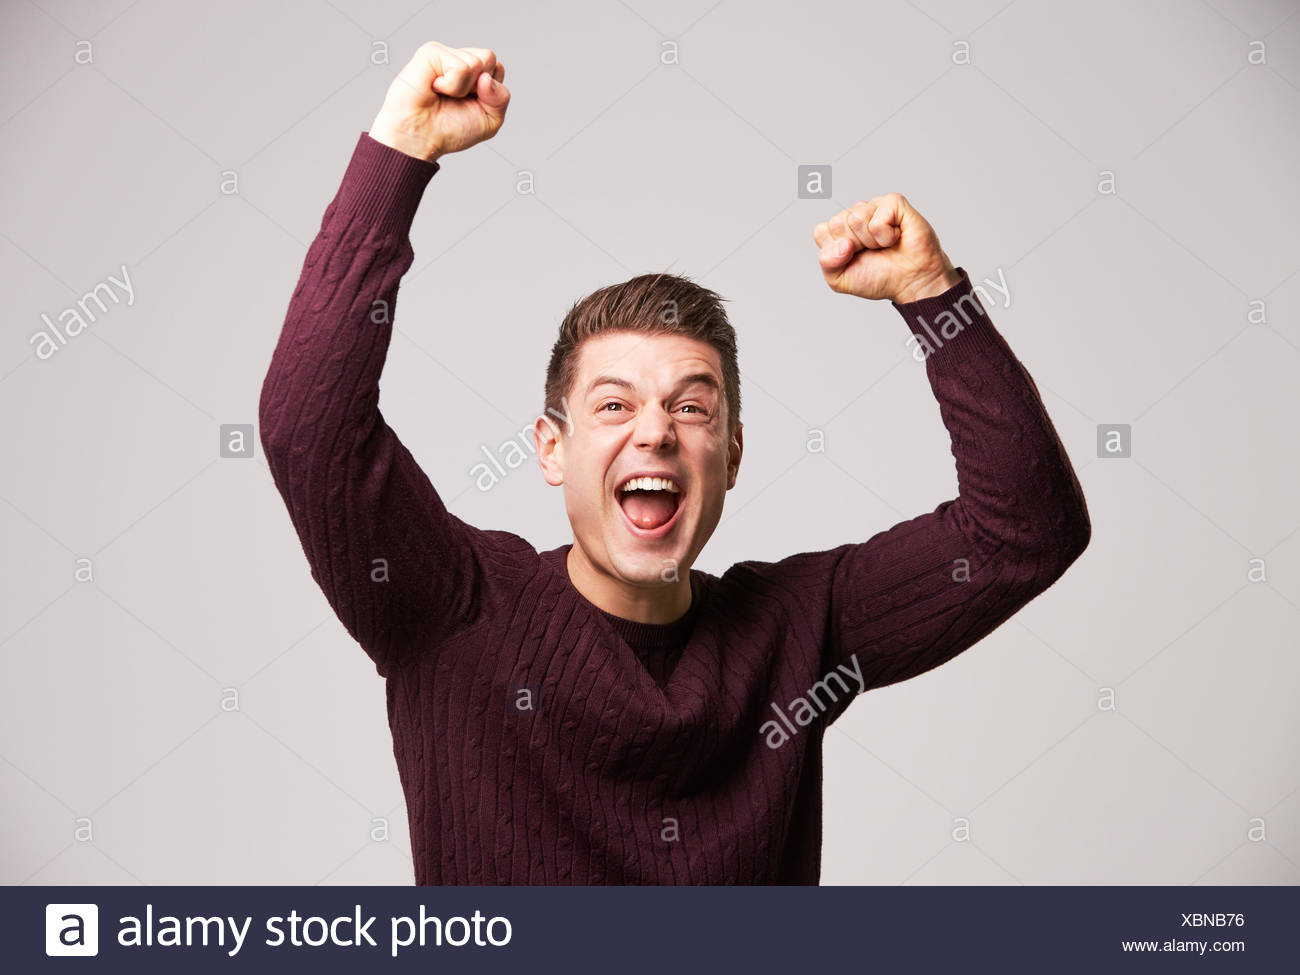 Portrait of a celebrating young white man punching the air - Stock Image